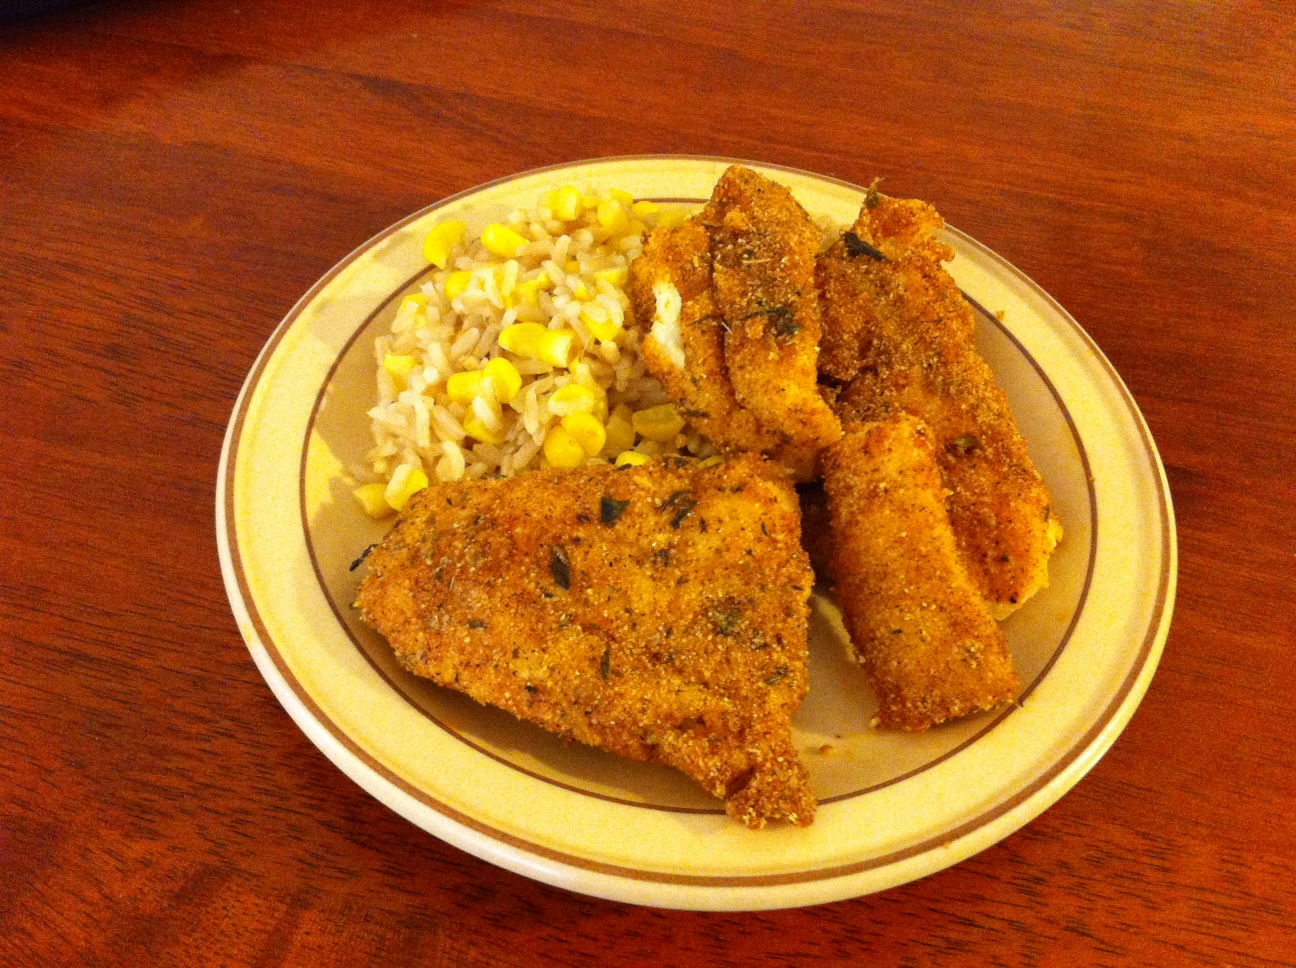 cajun corn meal breaded chicken and fish